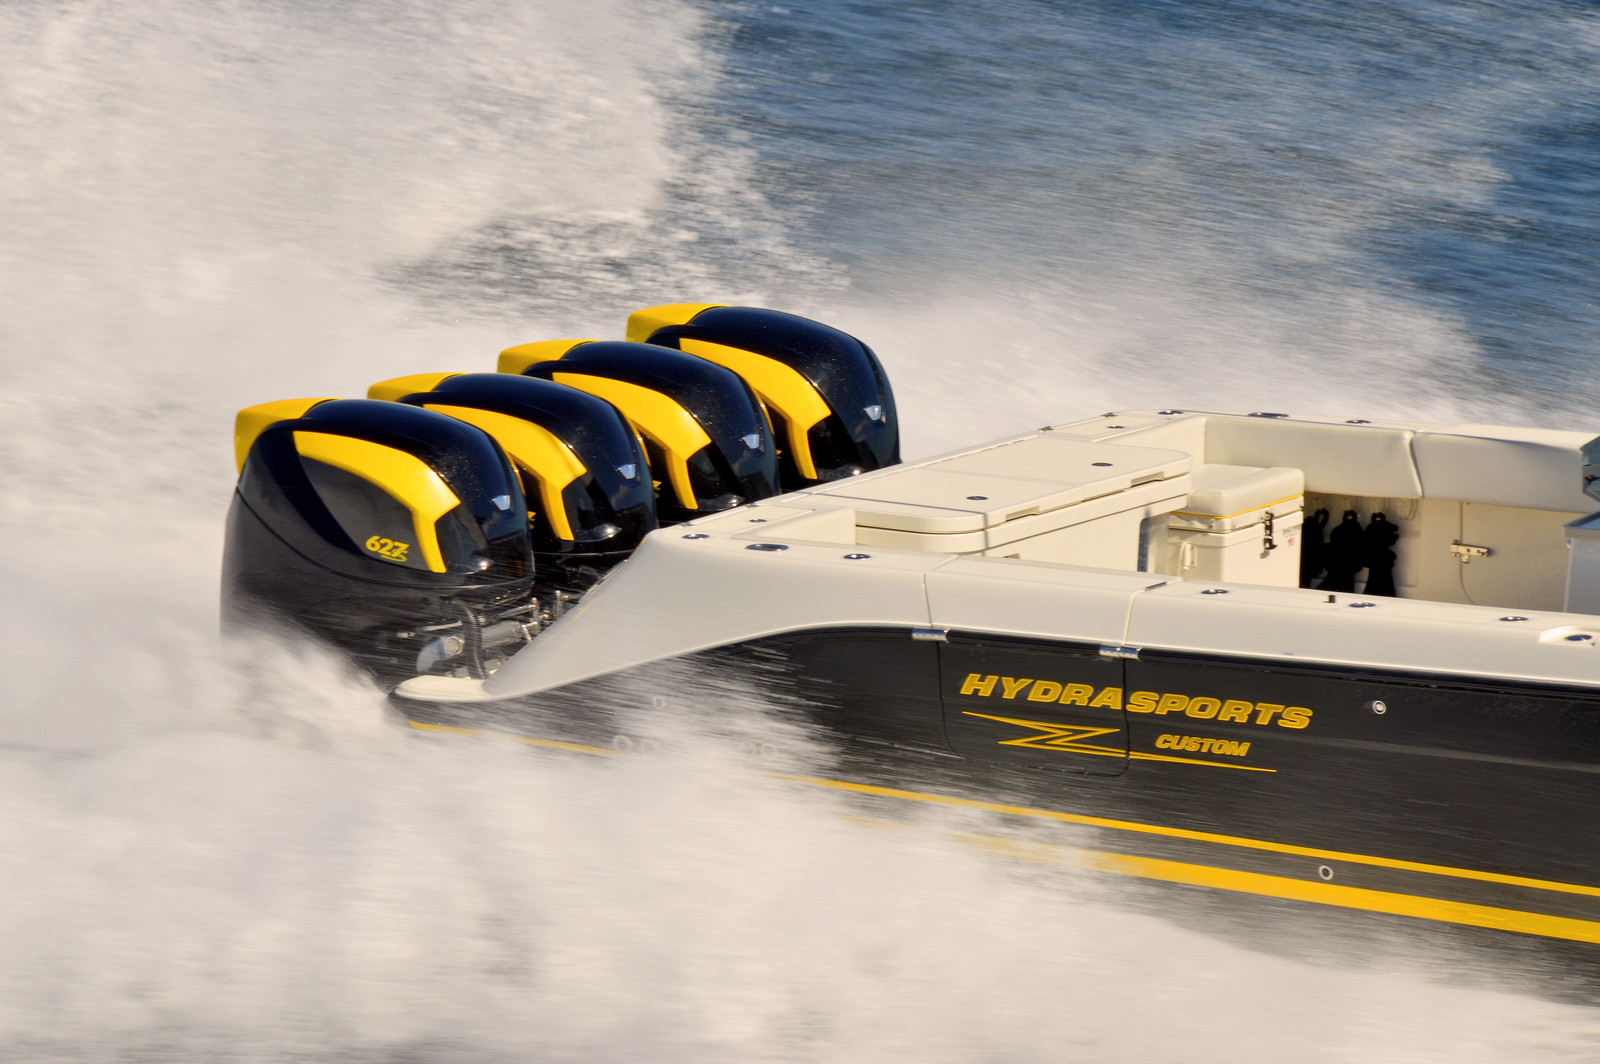 Hydra Sports Boats >> Bet You Don't Know Center Consoles... - Sea Magazine